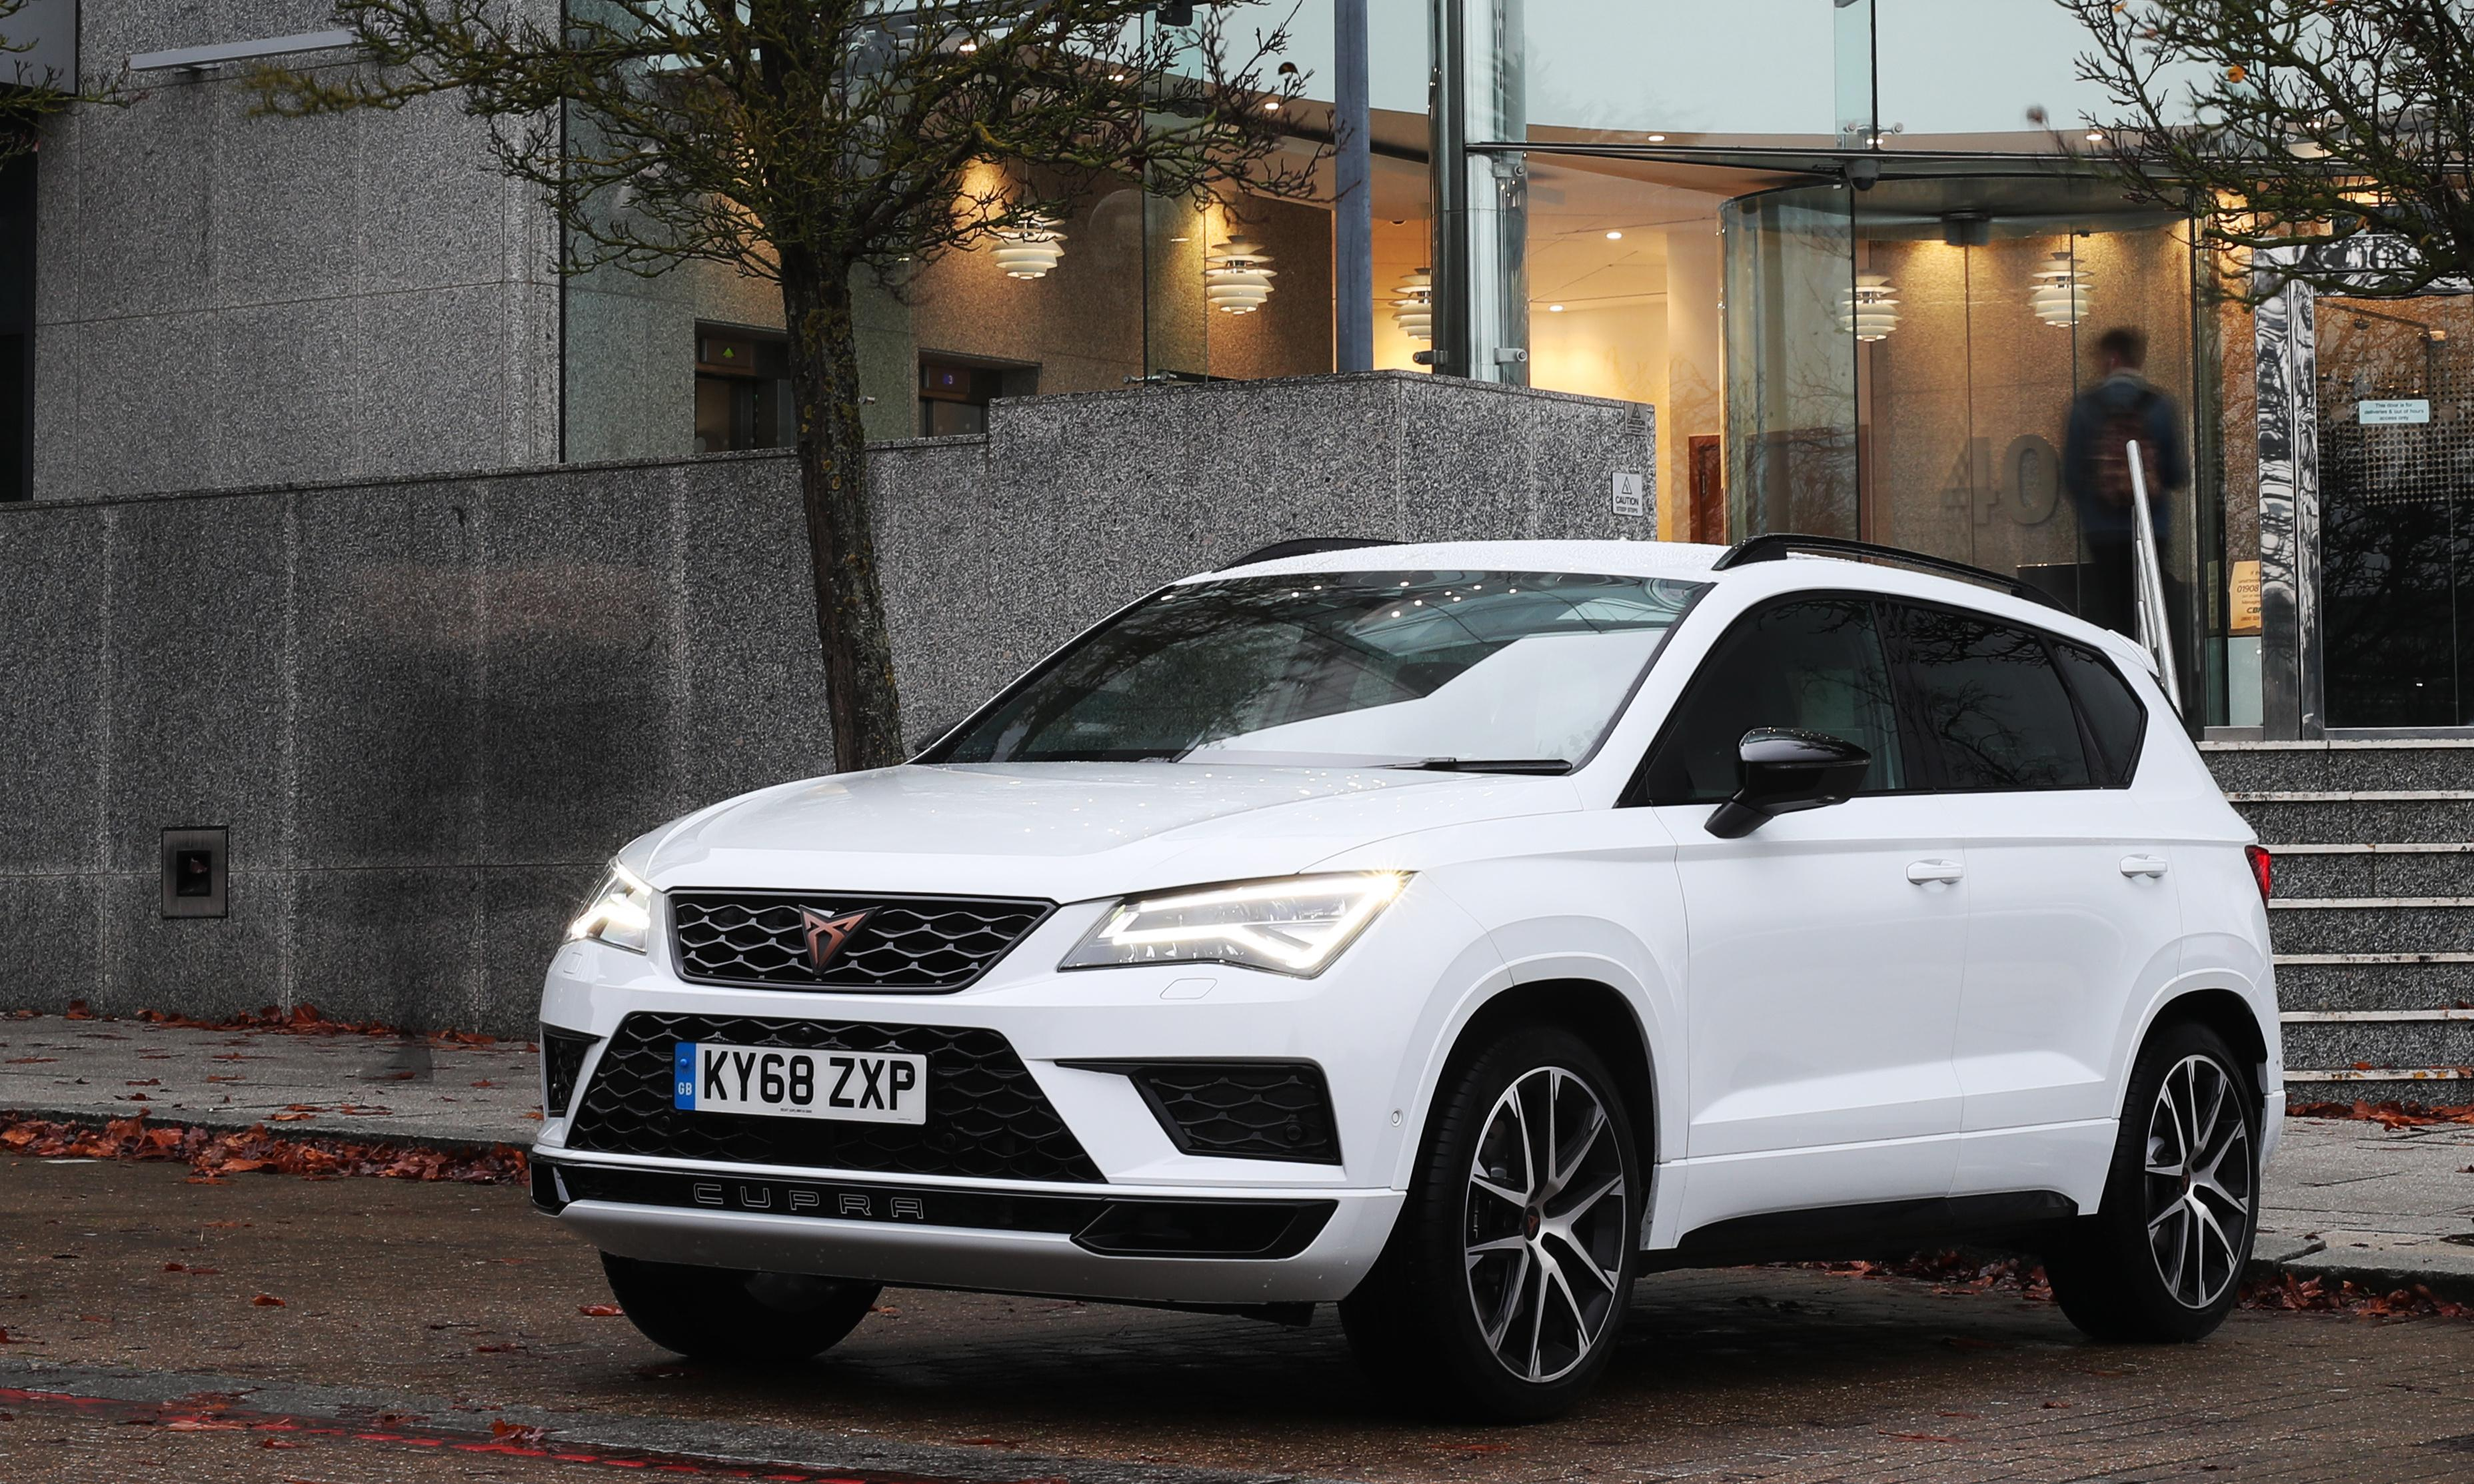 Cupra Ateca: 'A sizzling hot SUV that is fast but not furious'